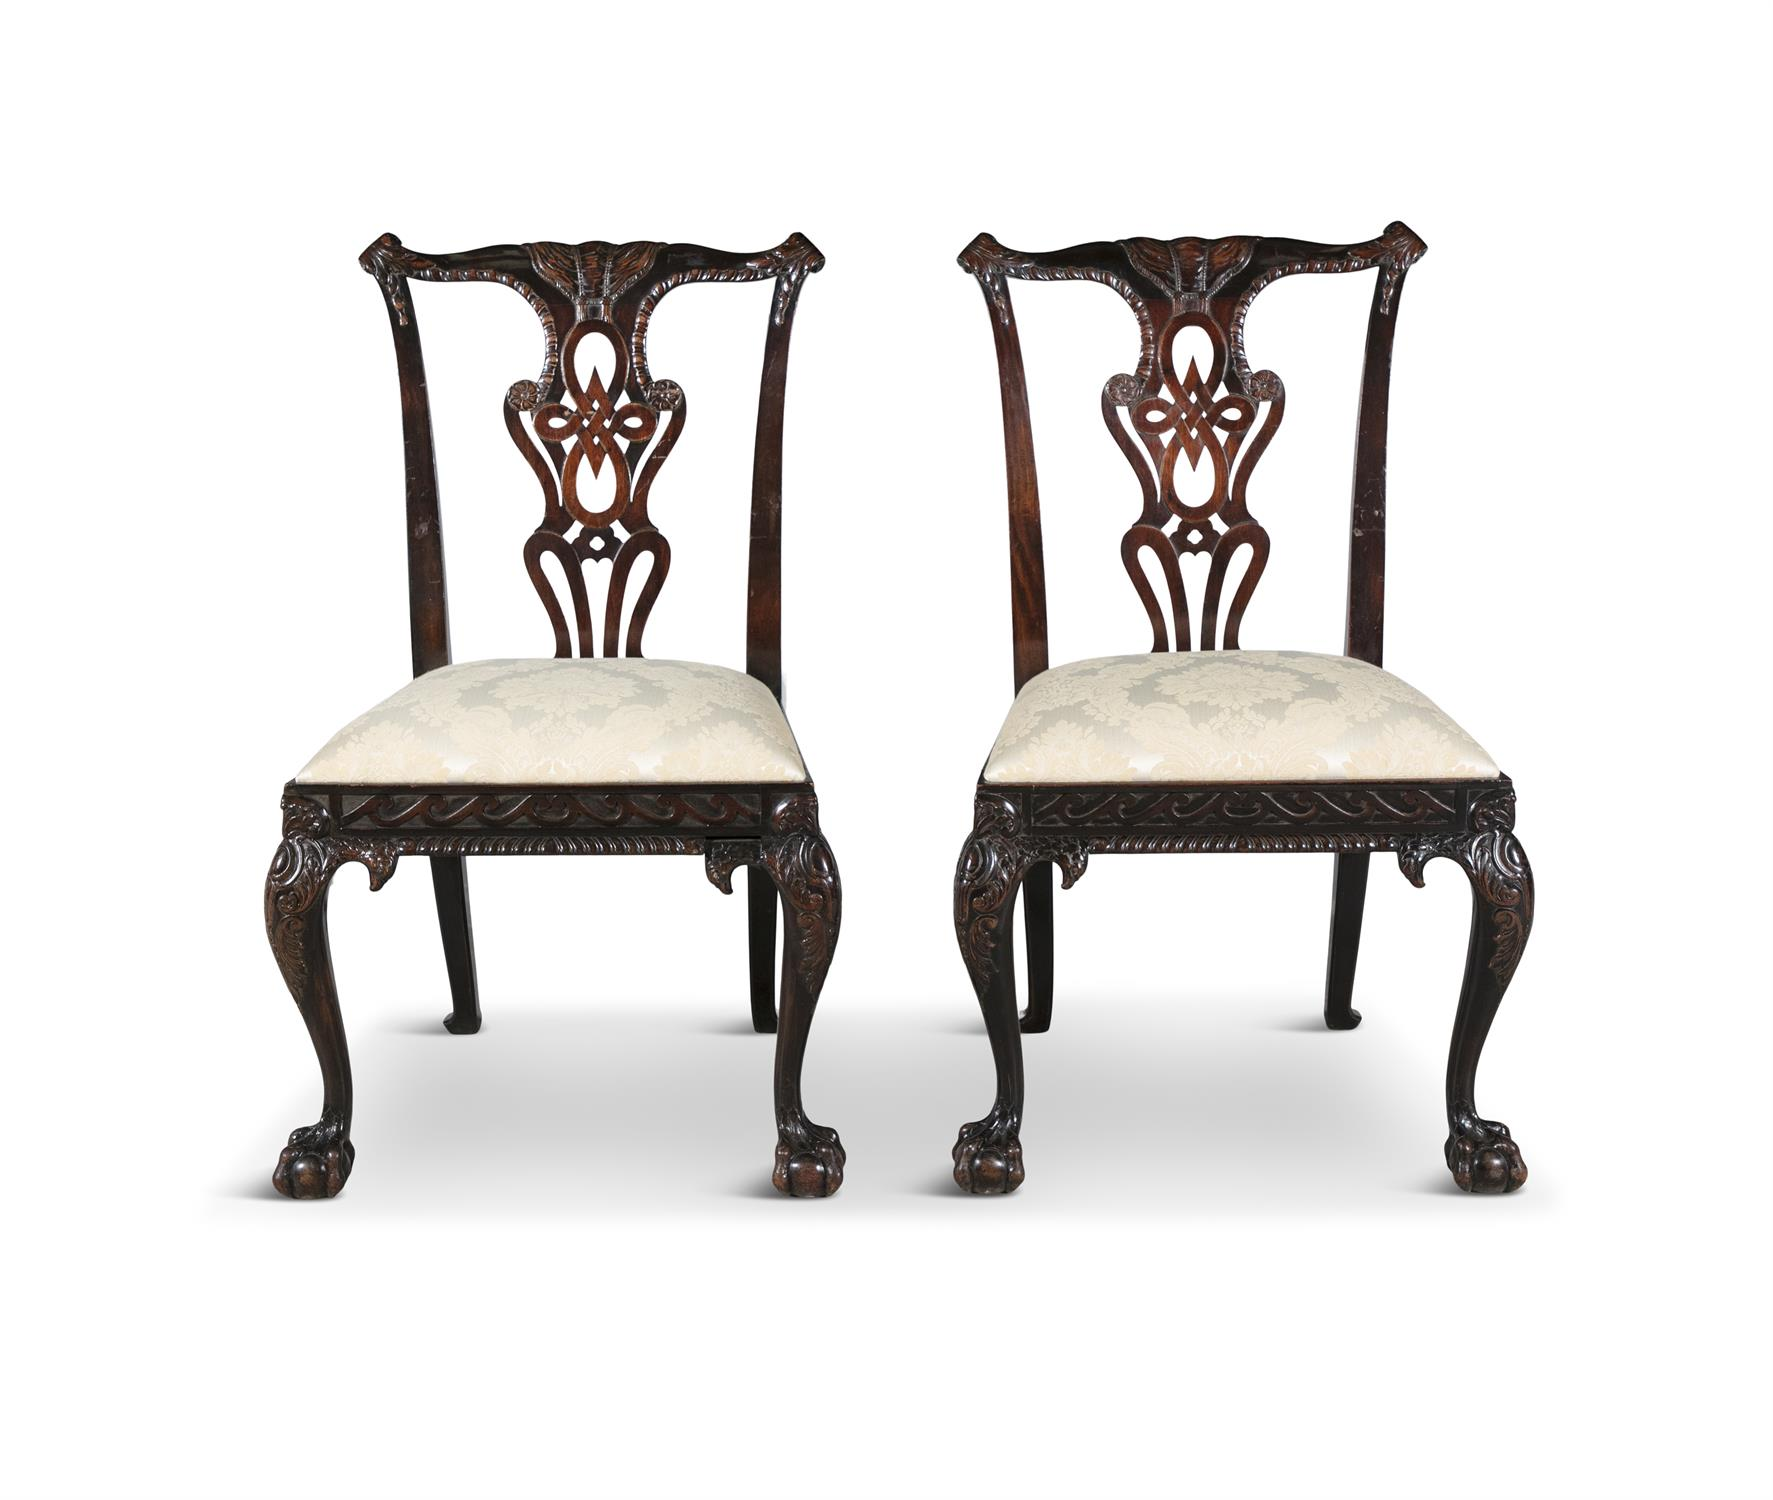 A PAIR OF GEORGIAN REVIVAL MAHOGANY DINING CHAIRS, 19th century, each with pierced vase shaped